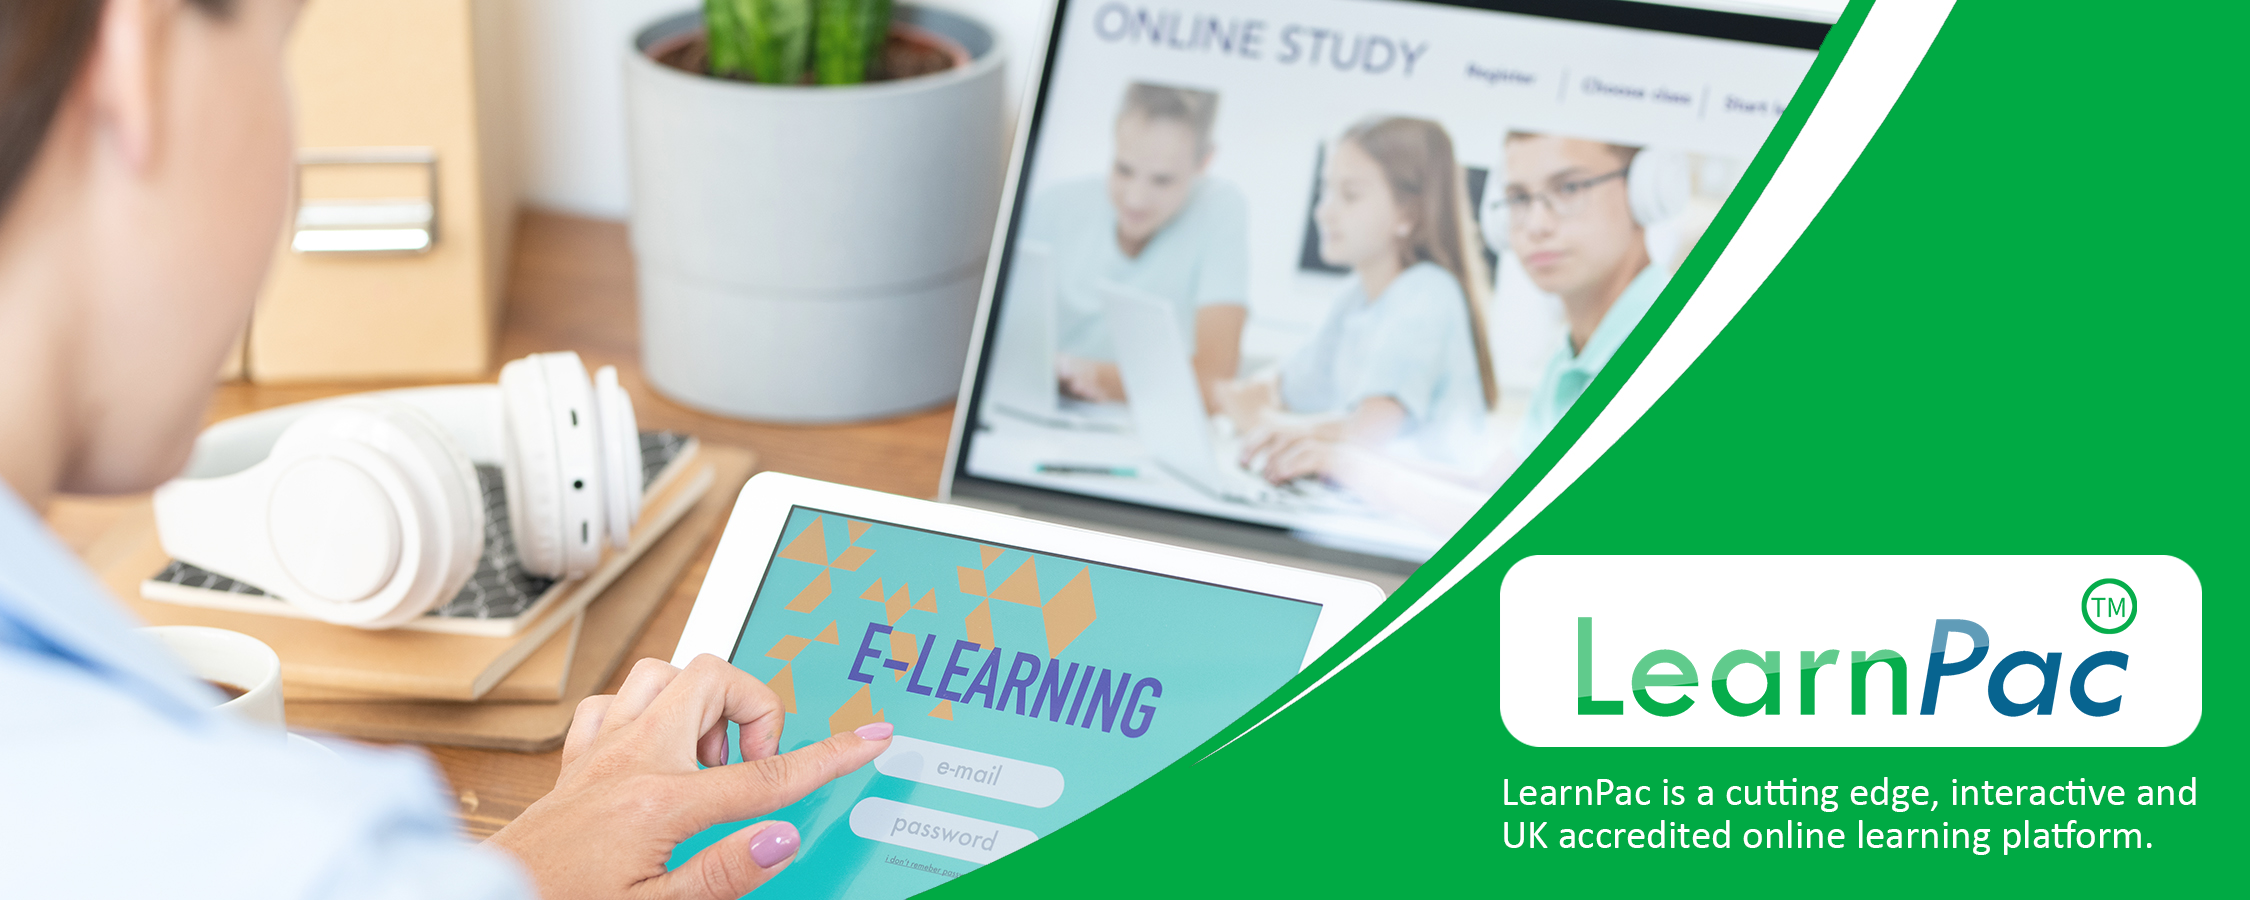 Outlook 2016 Essentials Training - Online Learning Courses - E-Learning Courses - LearnPac Systems UK -